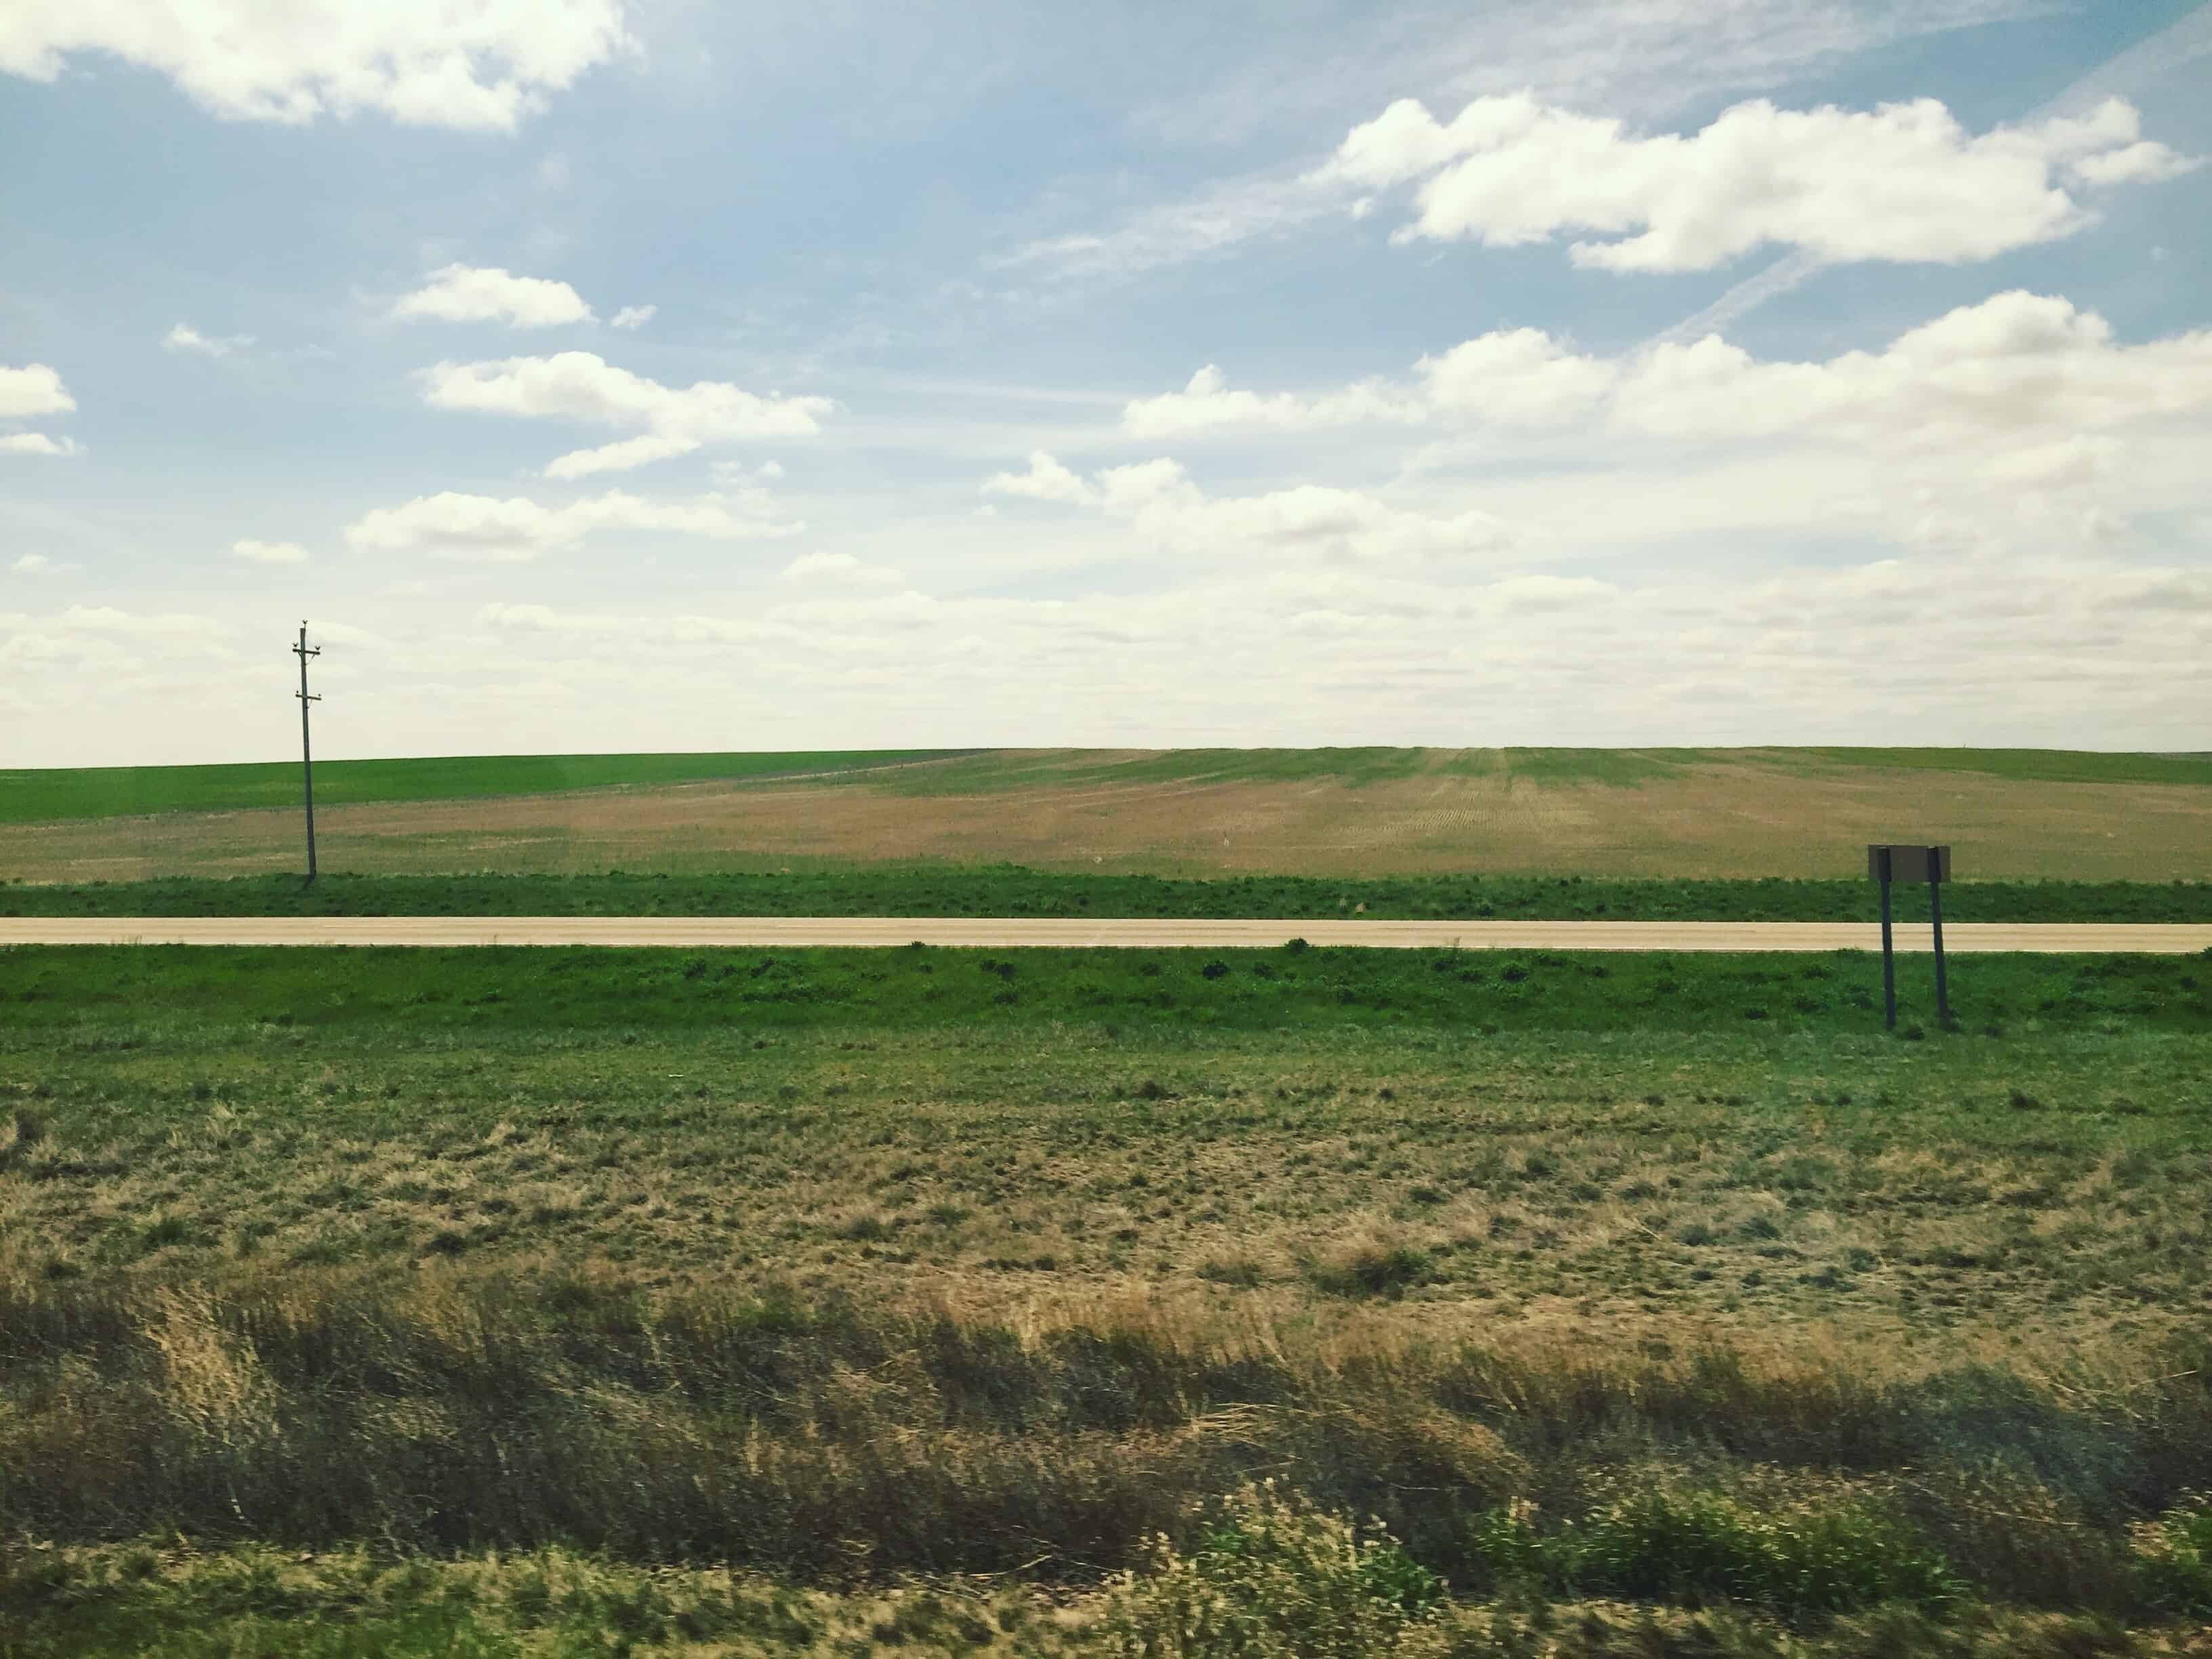 Ahhh Route 2! How are you old friend?!??? In 2007 @punbomber @cvwphoto and I rode 700 miles on Route 2 clear across North Dakota and Montana. It looks exactly like this for all 700 of those miles. #DakotaDementia #greatplains #Route2 #Biketouring #teamnortherntier #PoopinOnThePrarie #bikerideacrossamerica #jokes #architectbeserious